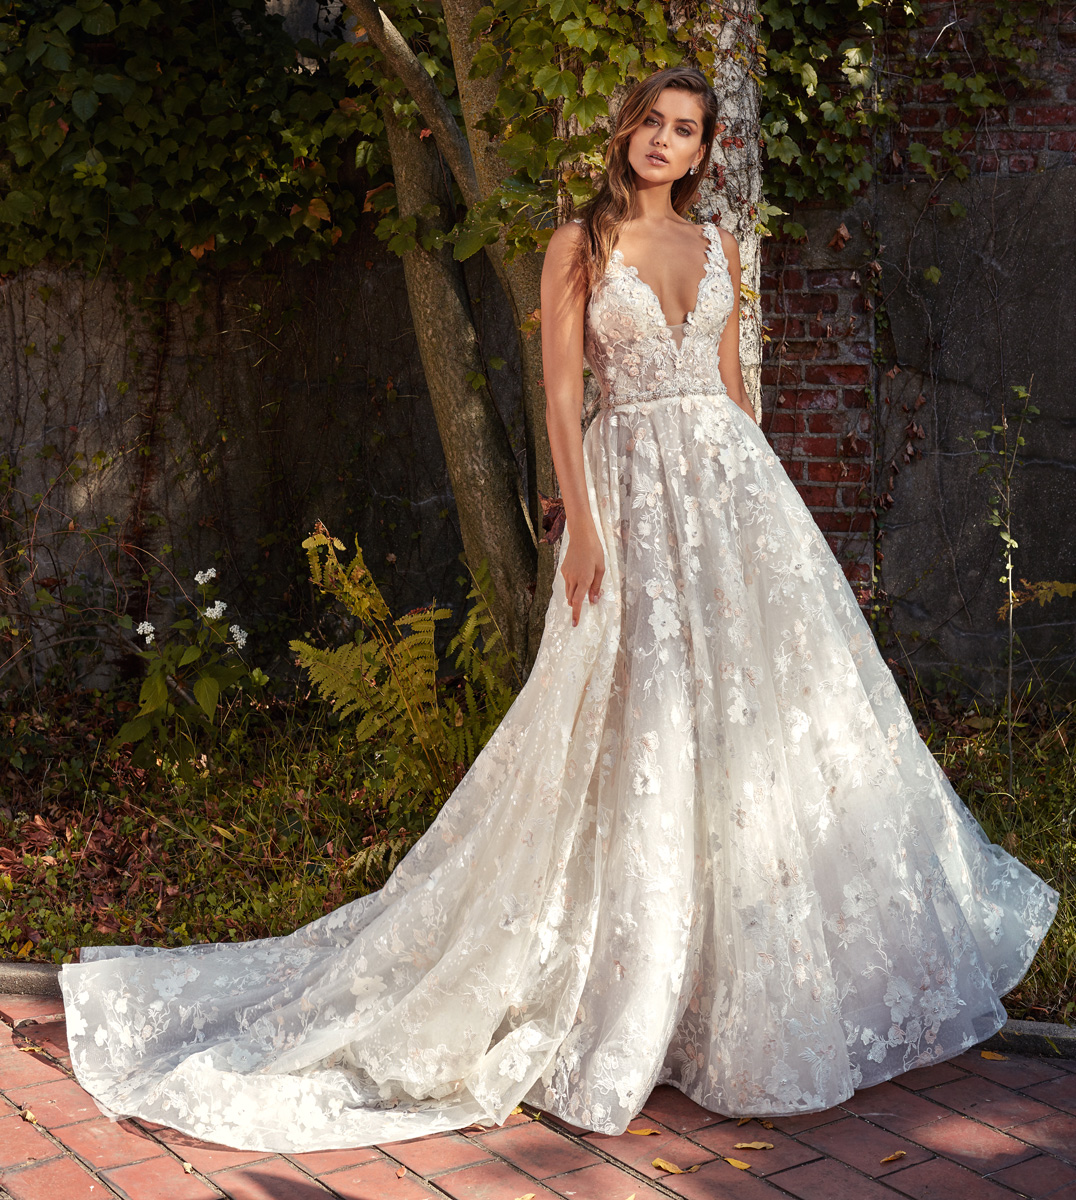 Wedding Gown Stores Nyc: Beaded Lace V-neck Flower Appliqué A-Line Wedding Dress